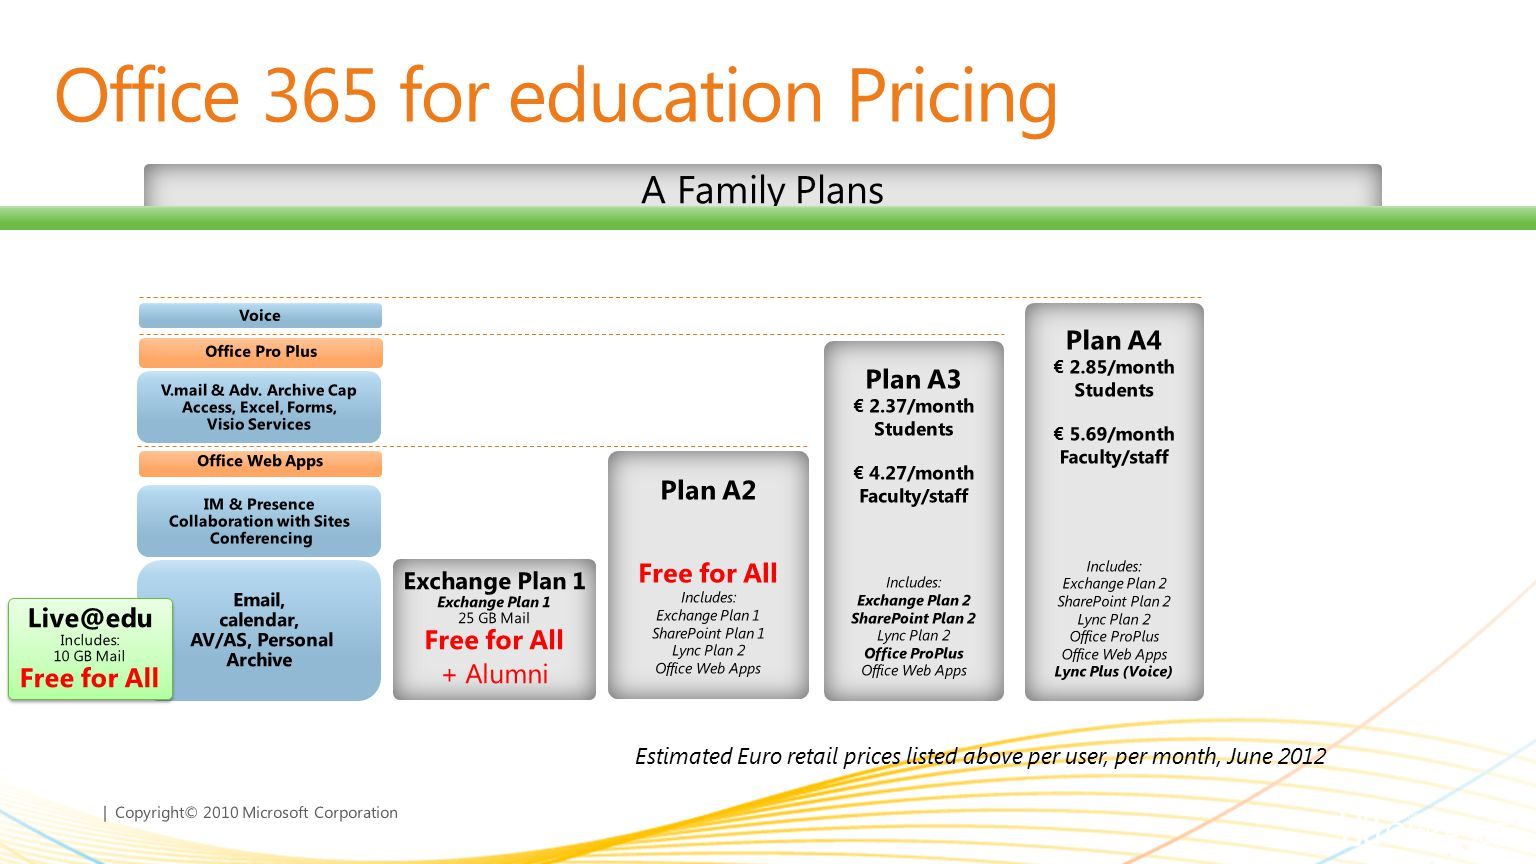 | Copyright© 2010 Microsoft Corporation Estimated Euro retail prices listed above per user, per month, June 2012 Office 365 for education Pricing